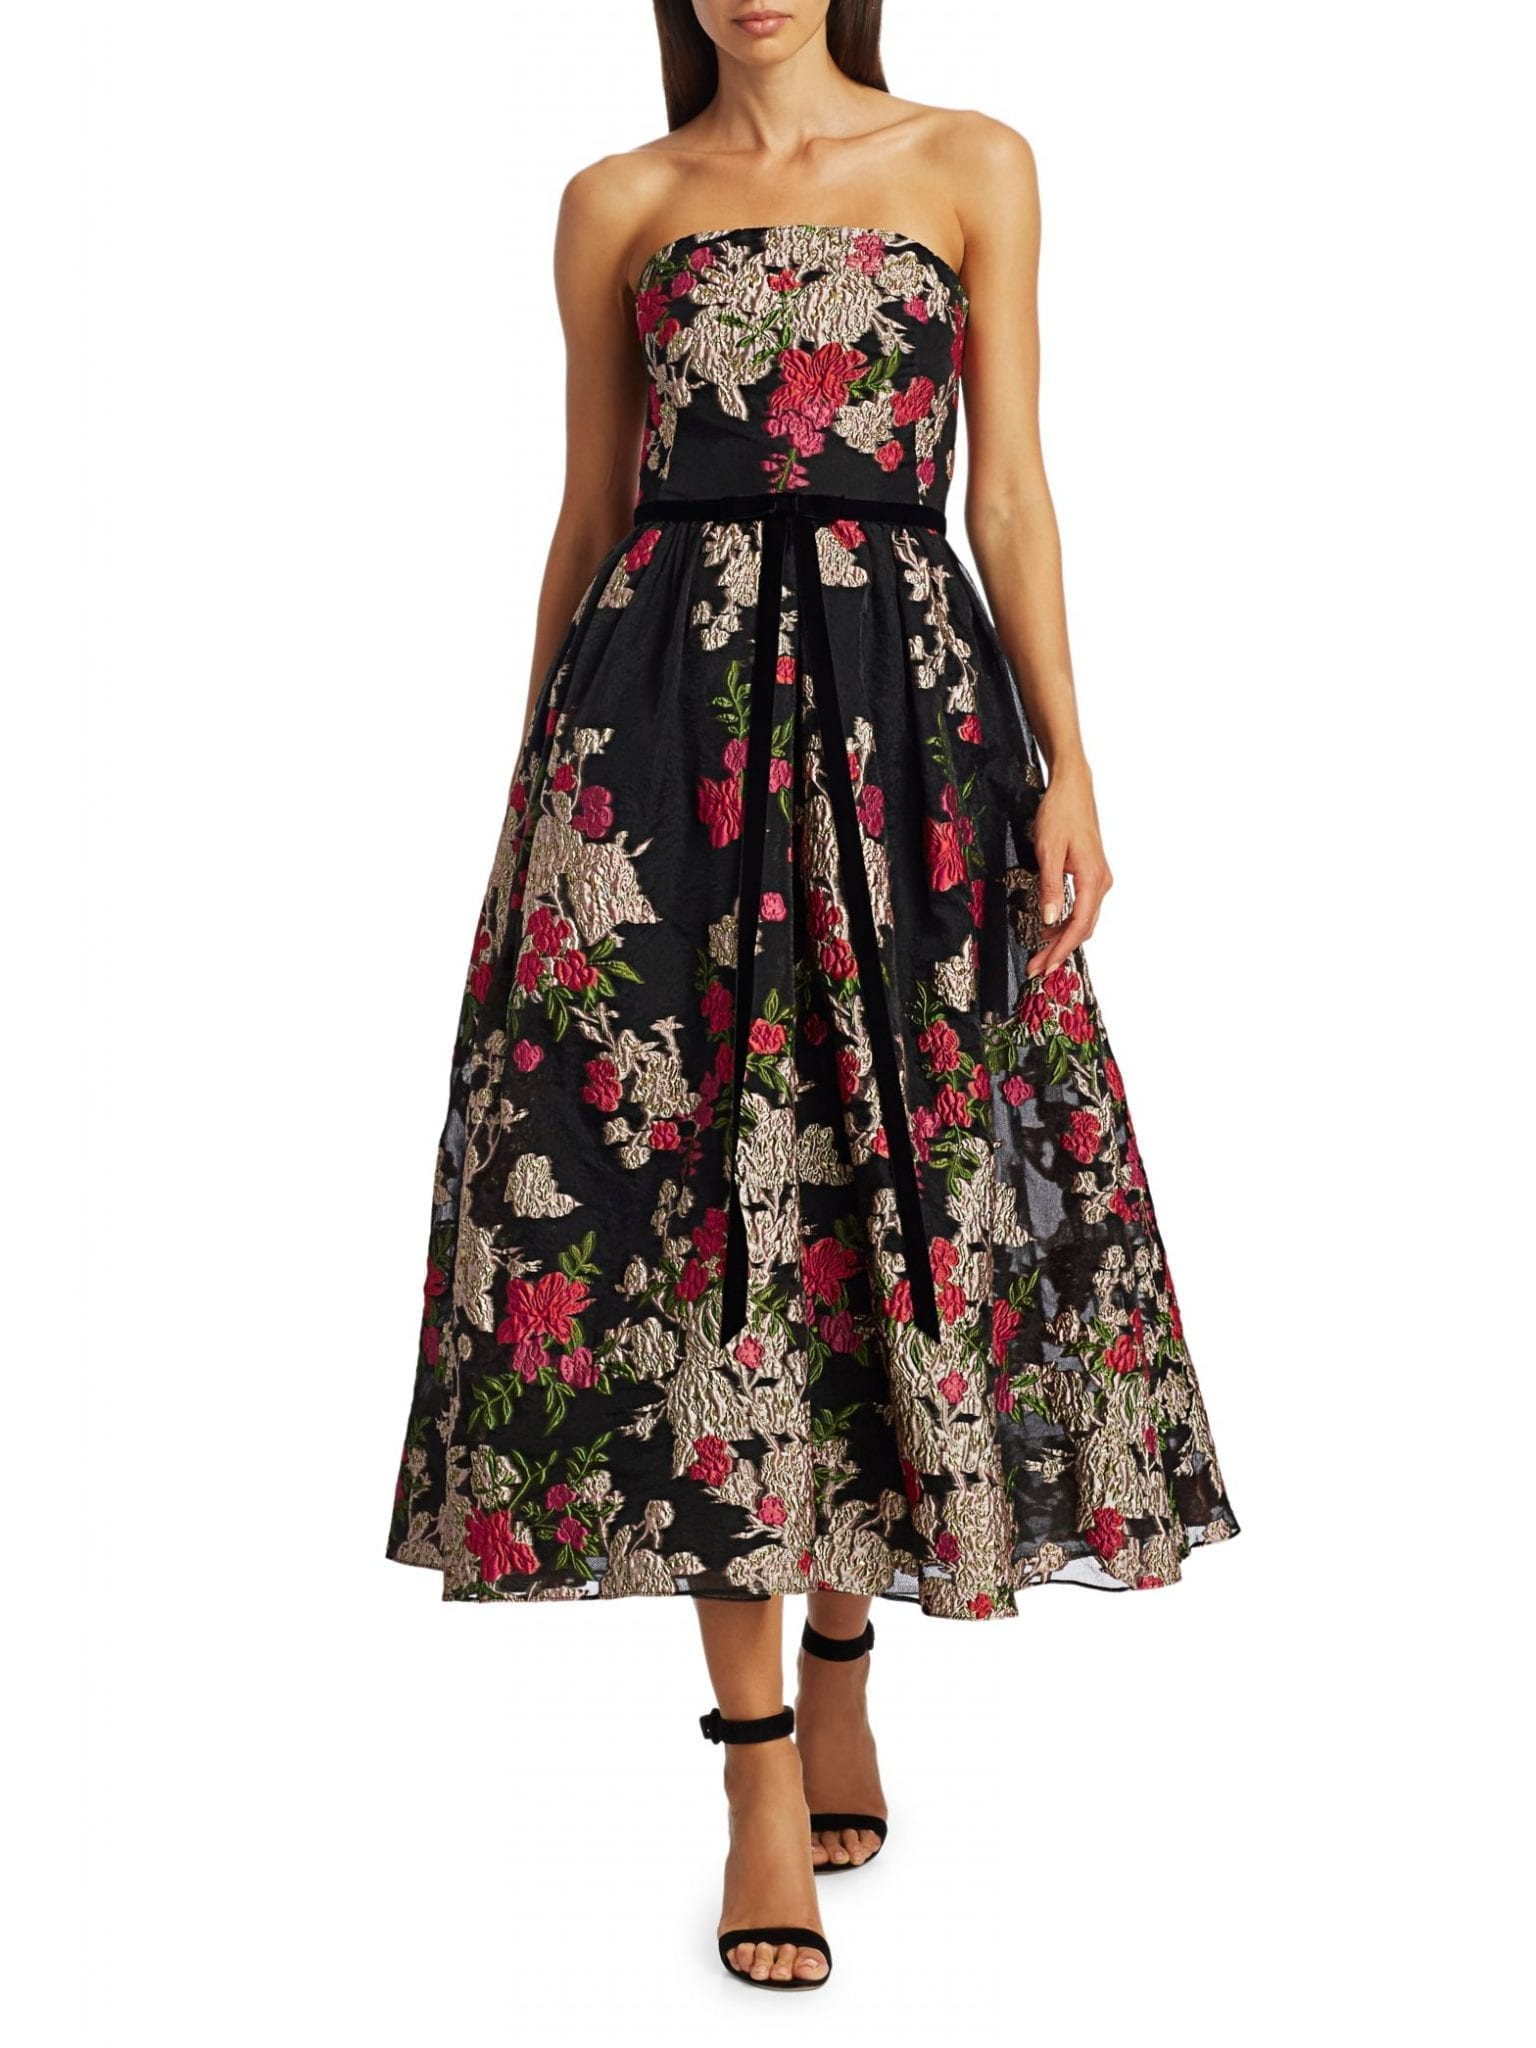 MARCHESA NOTTE Floral Cocktail Dress